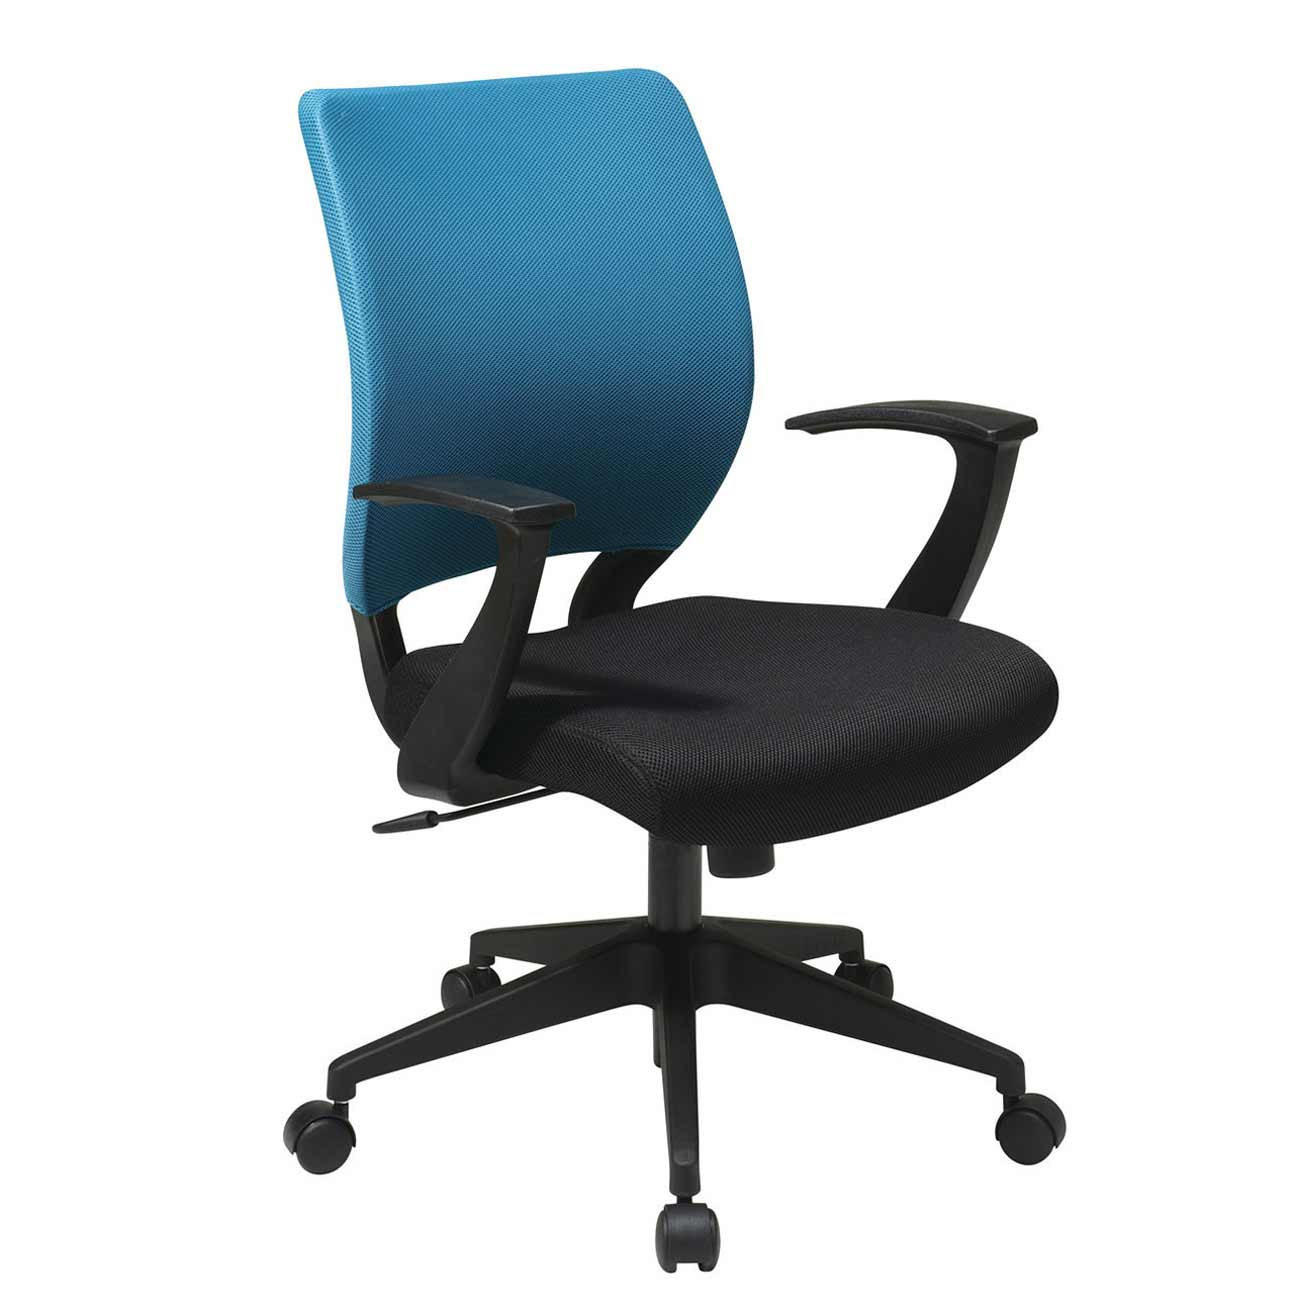 Bonanza Blue Sleeve Cover Executive Office Chair